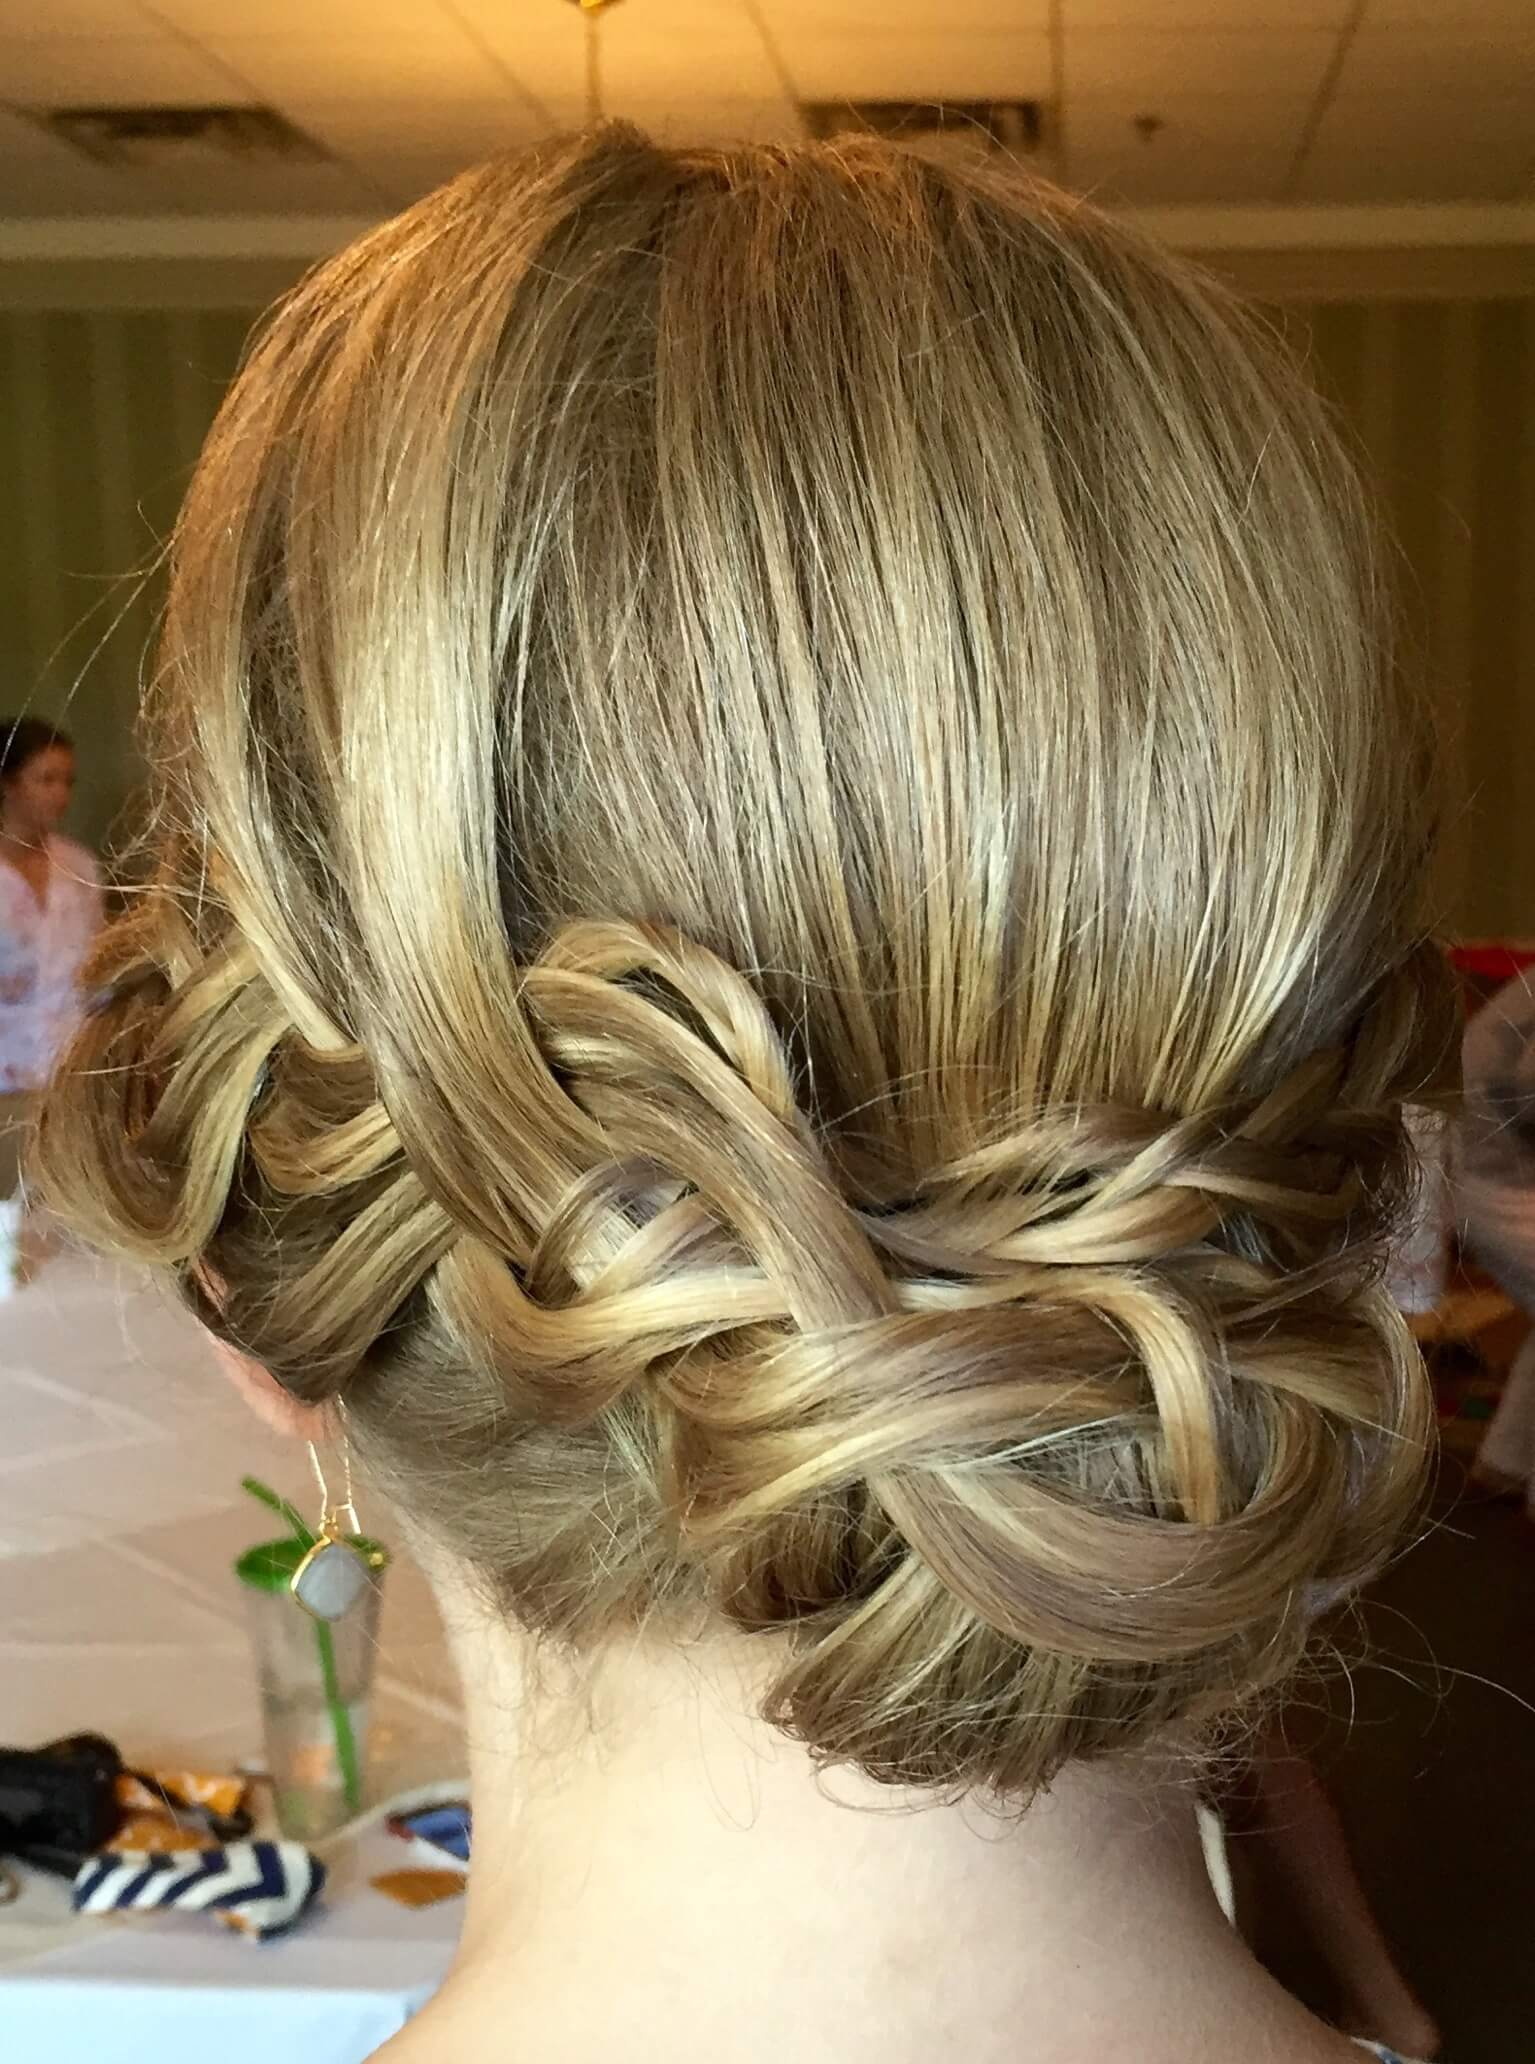 Hair stylist wedding